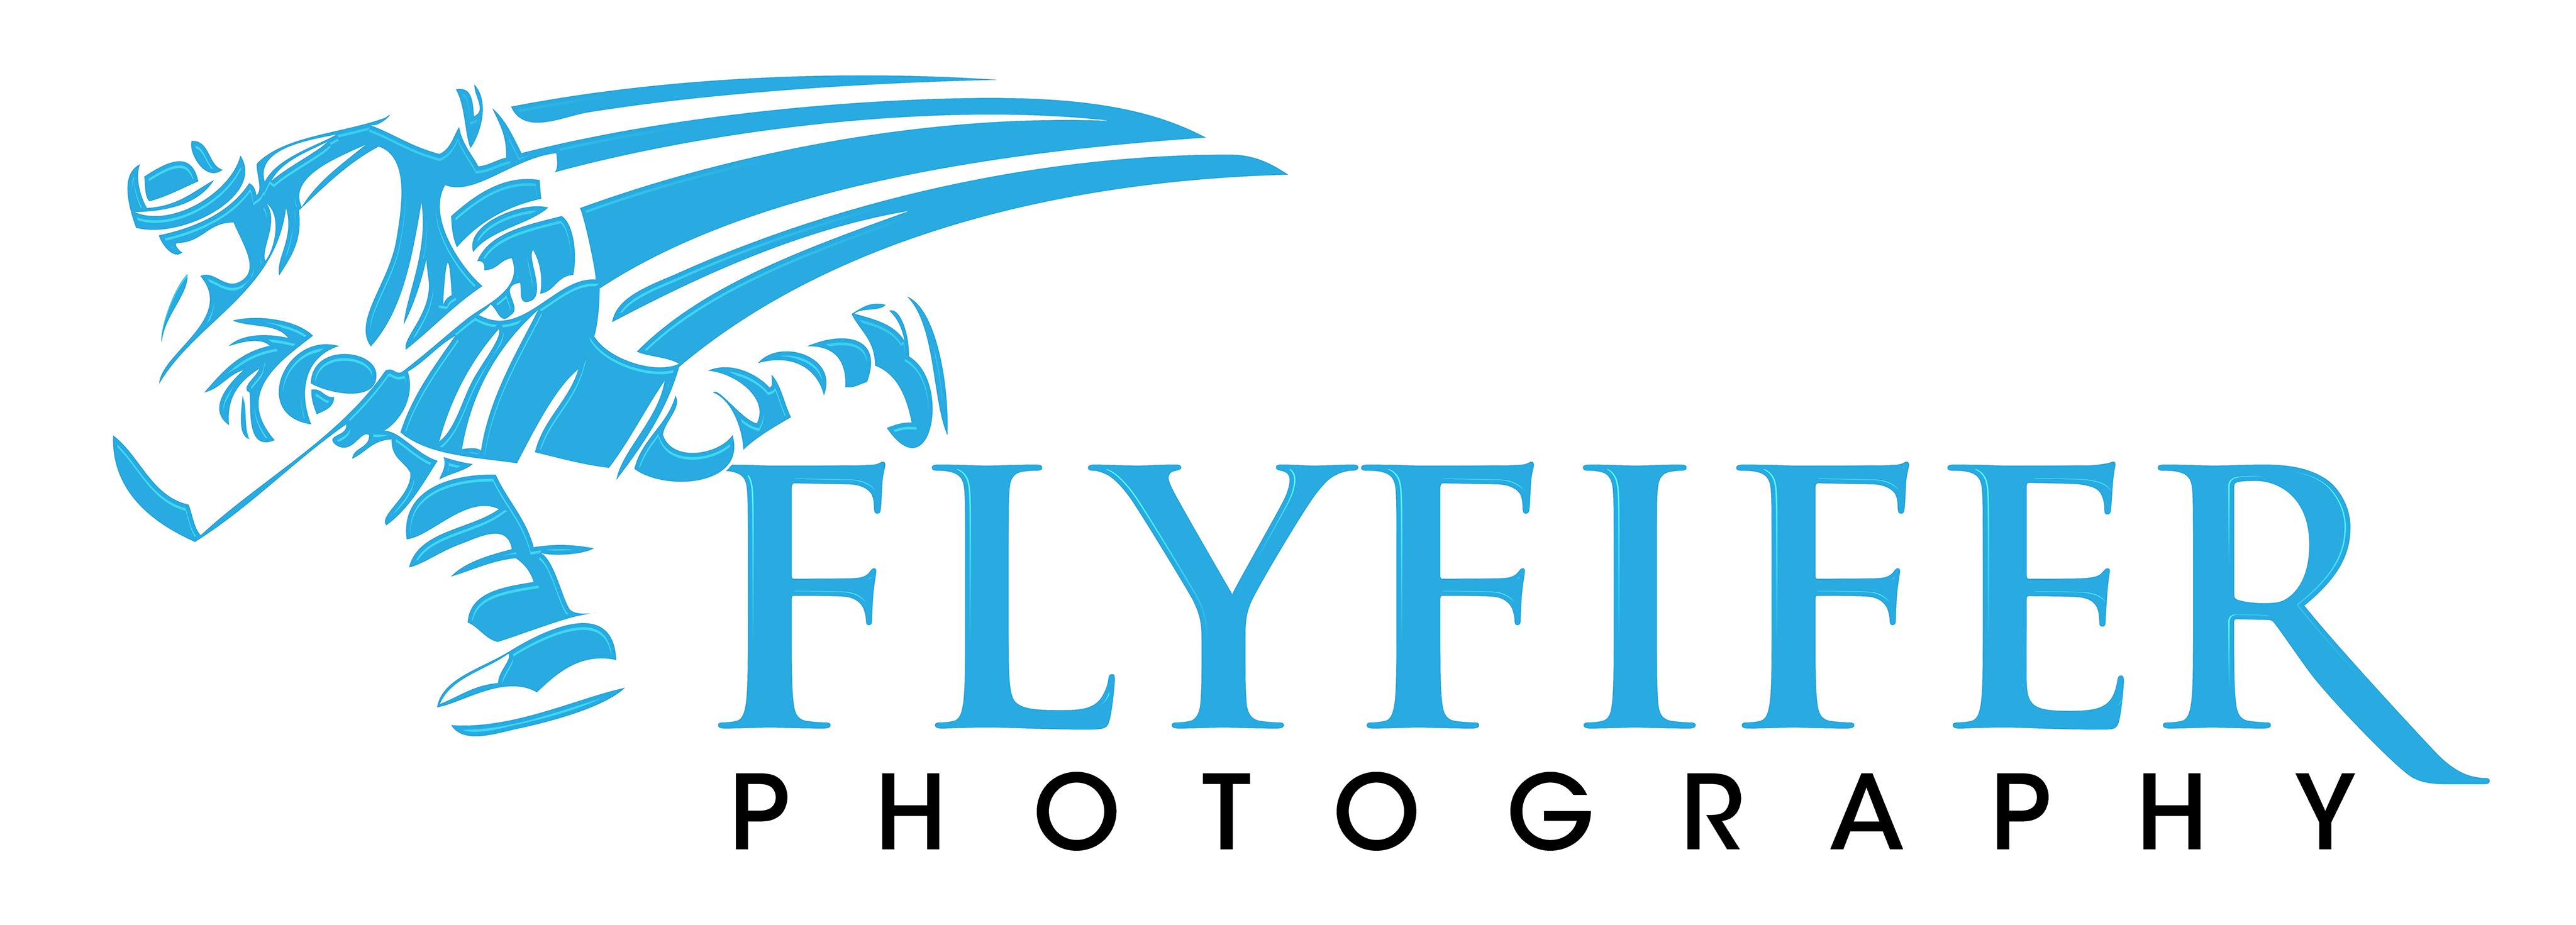 Flyfifer Photography